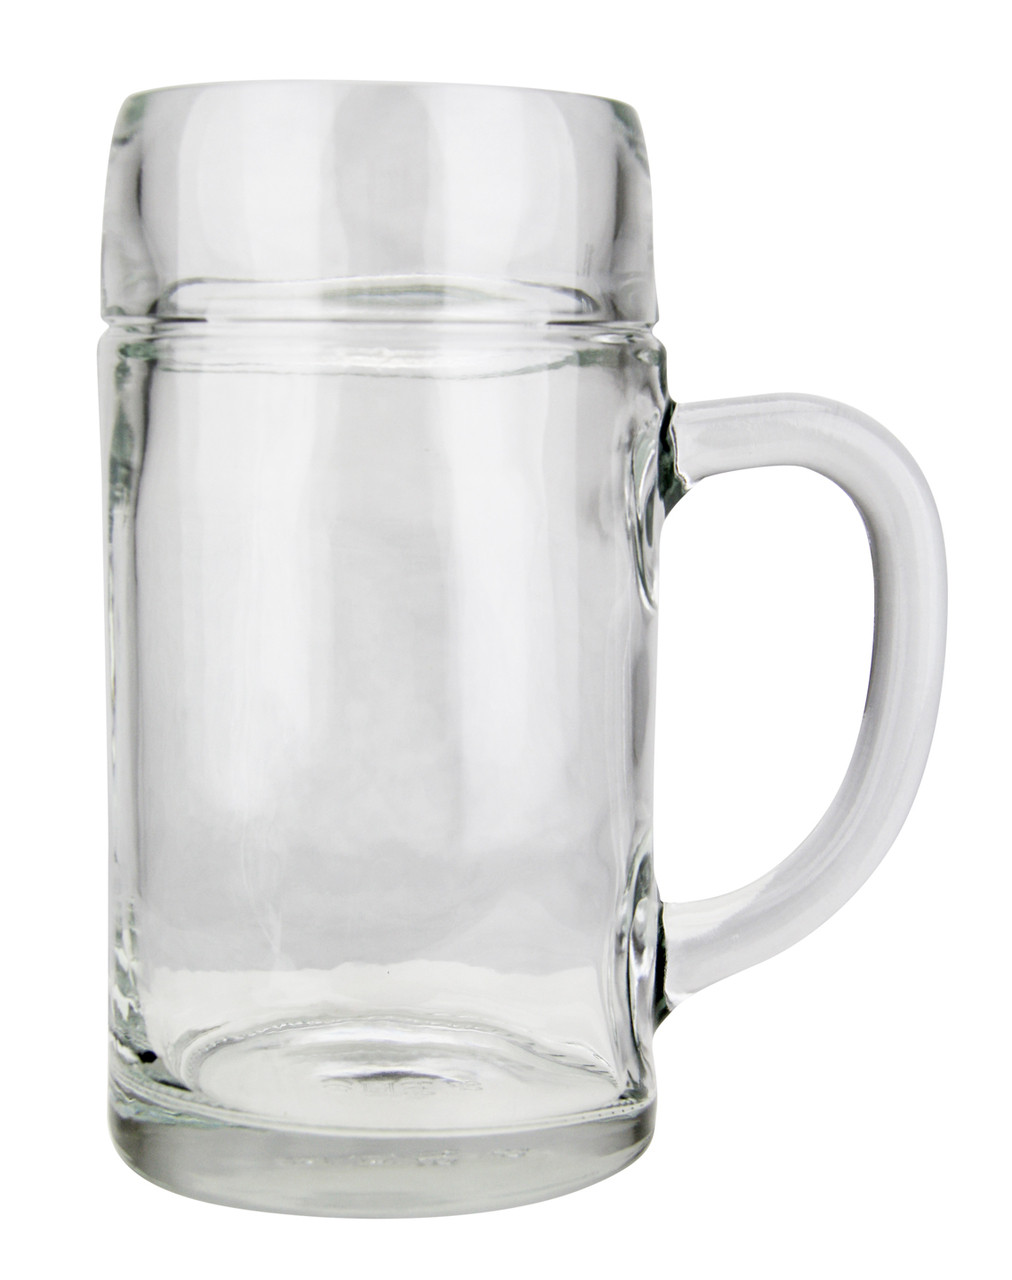 Left Side View, 1 Liter Styria Smooth Body Oktoberfest Glass Beer Mug , Empty